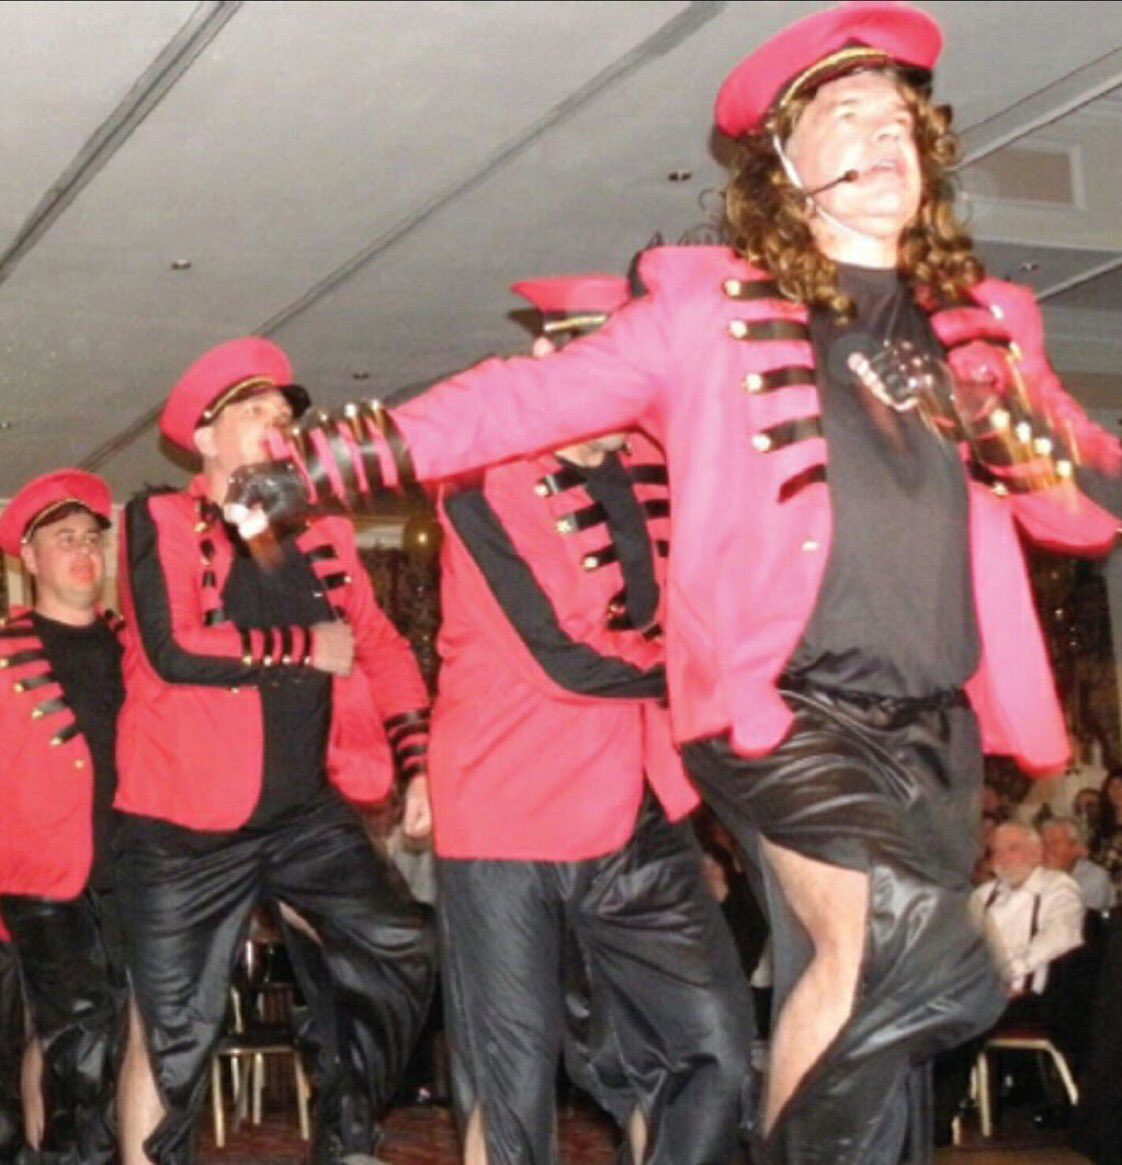 Sam allardyce dressed up as cheryl cole at a christmas party - never ...